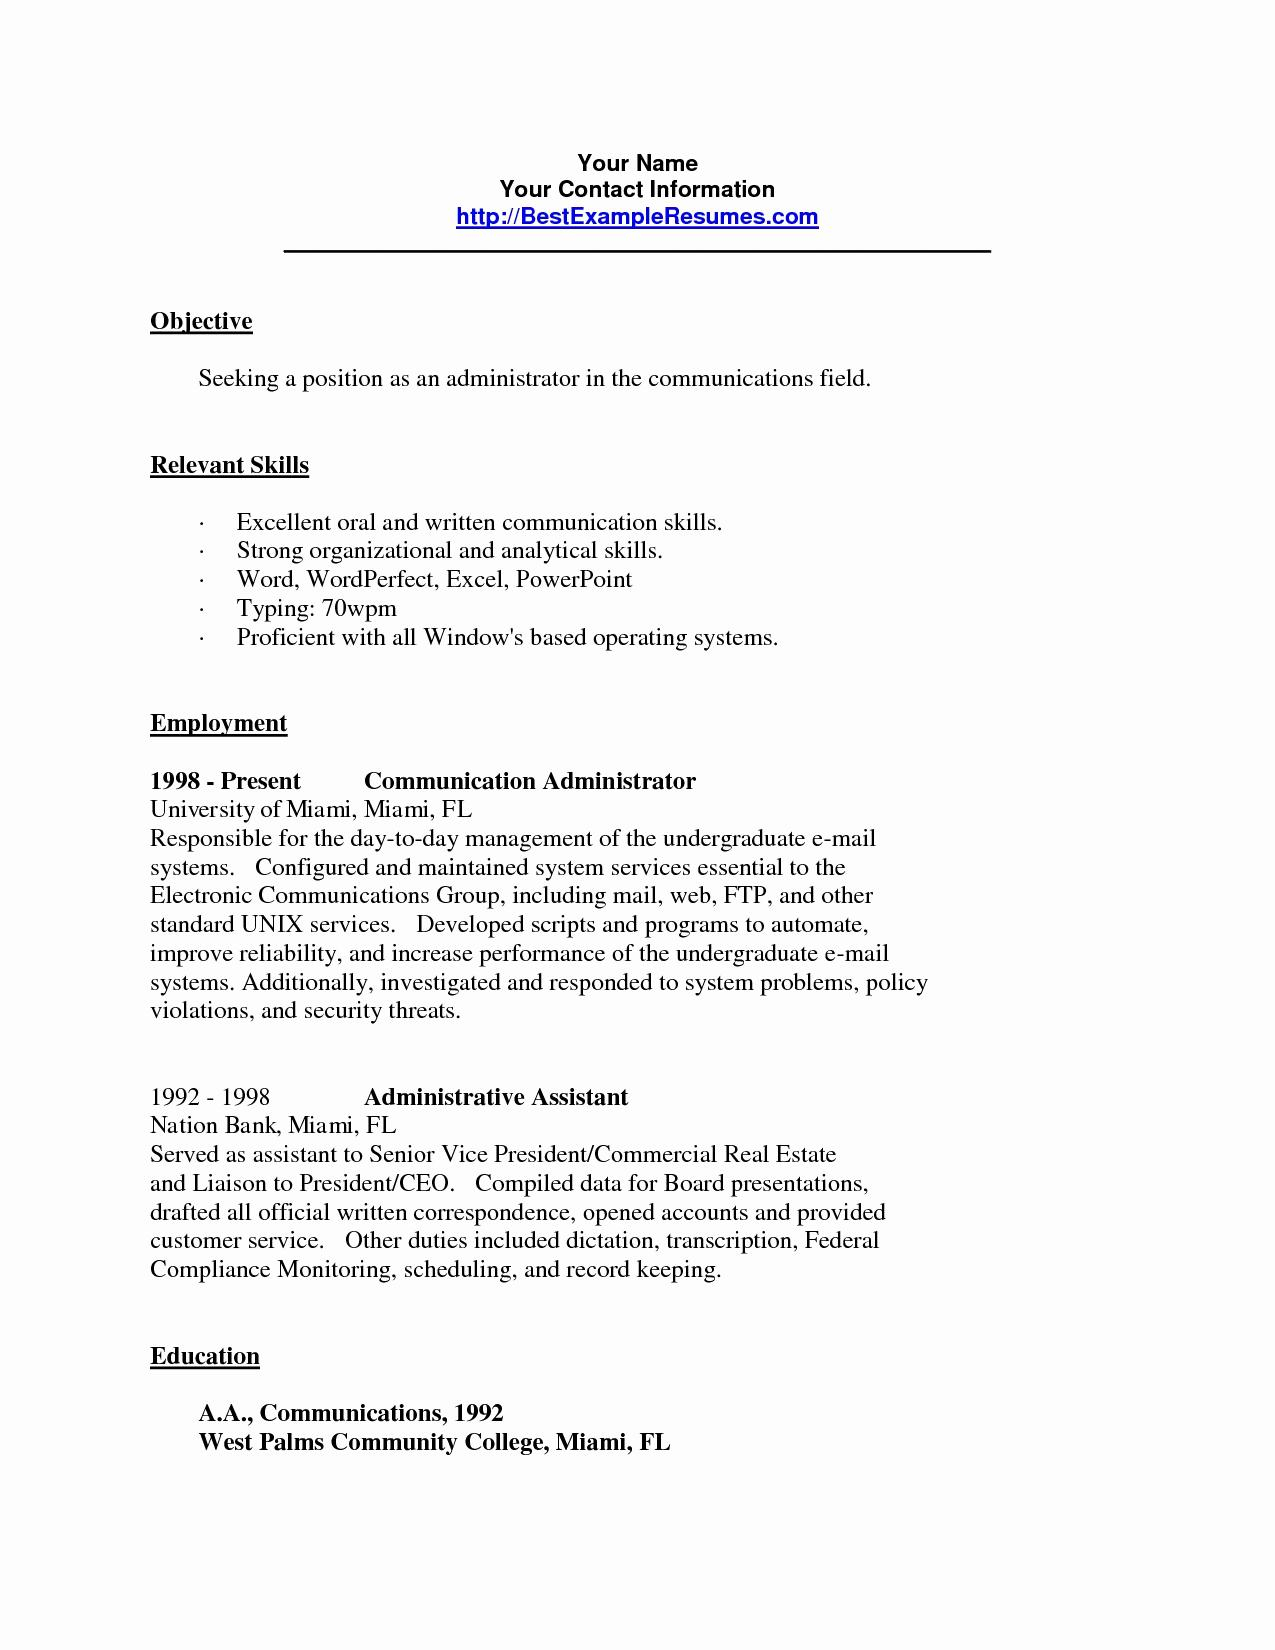 Objective Section Of Resume - Resume Skills Section Examples Lovely Sample Architect Resumes Web